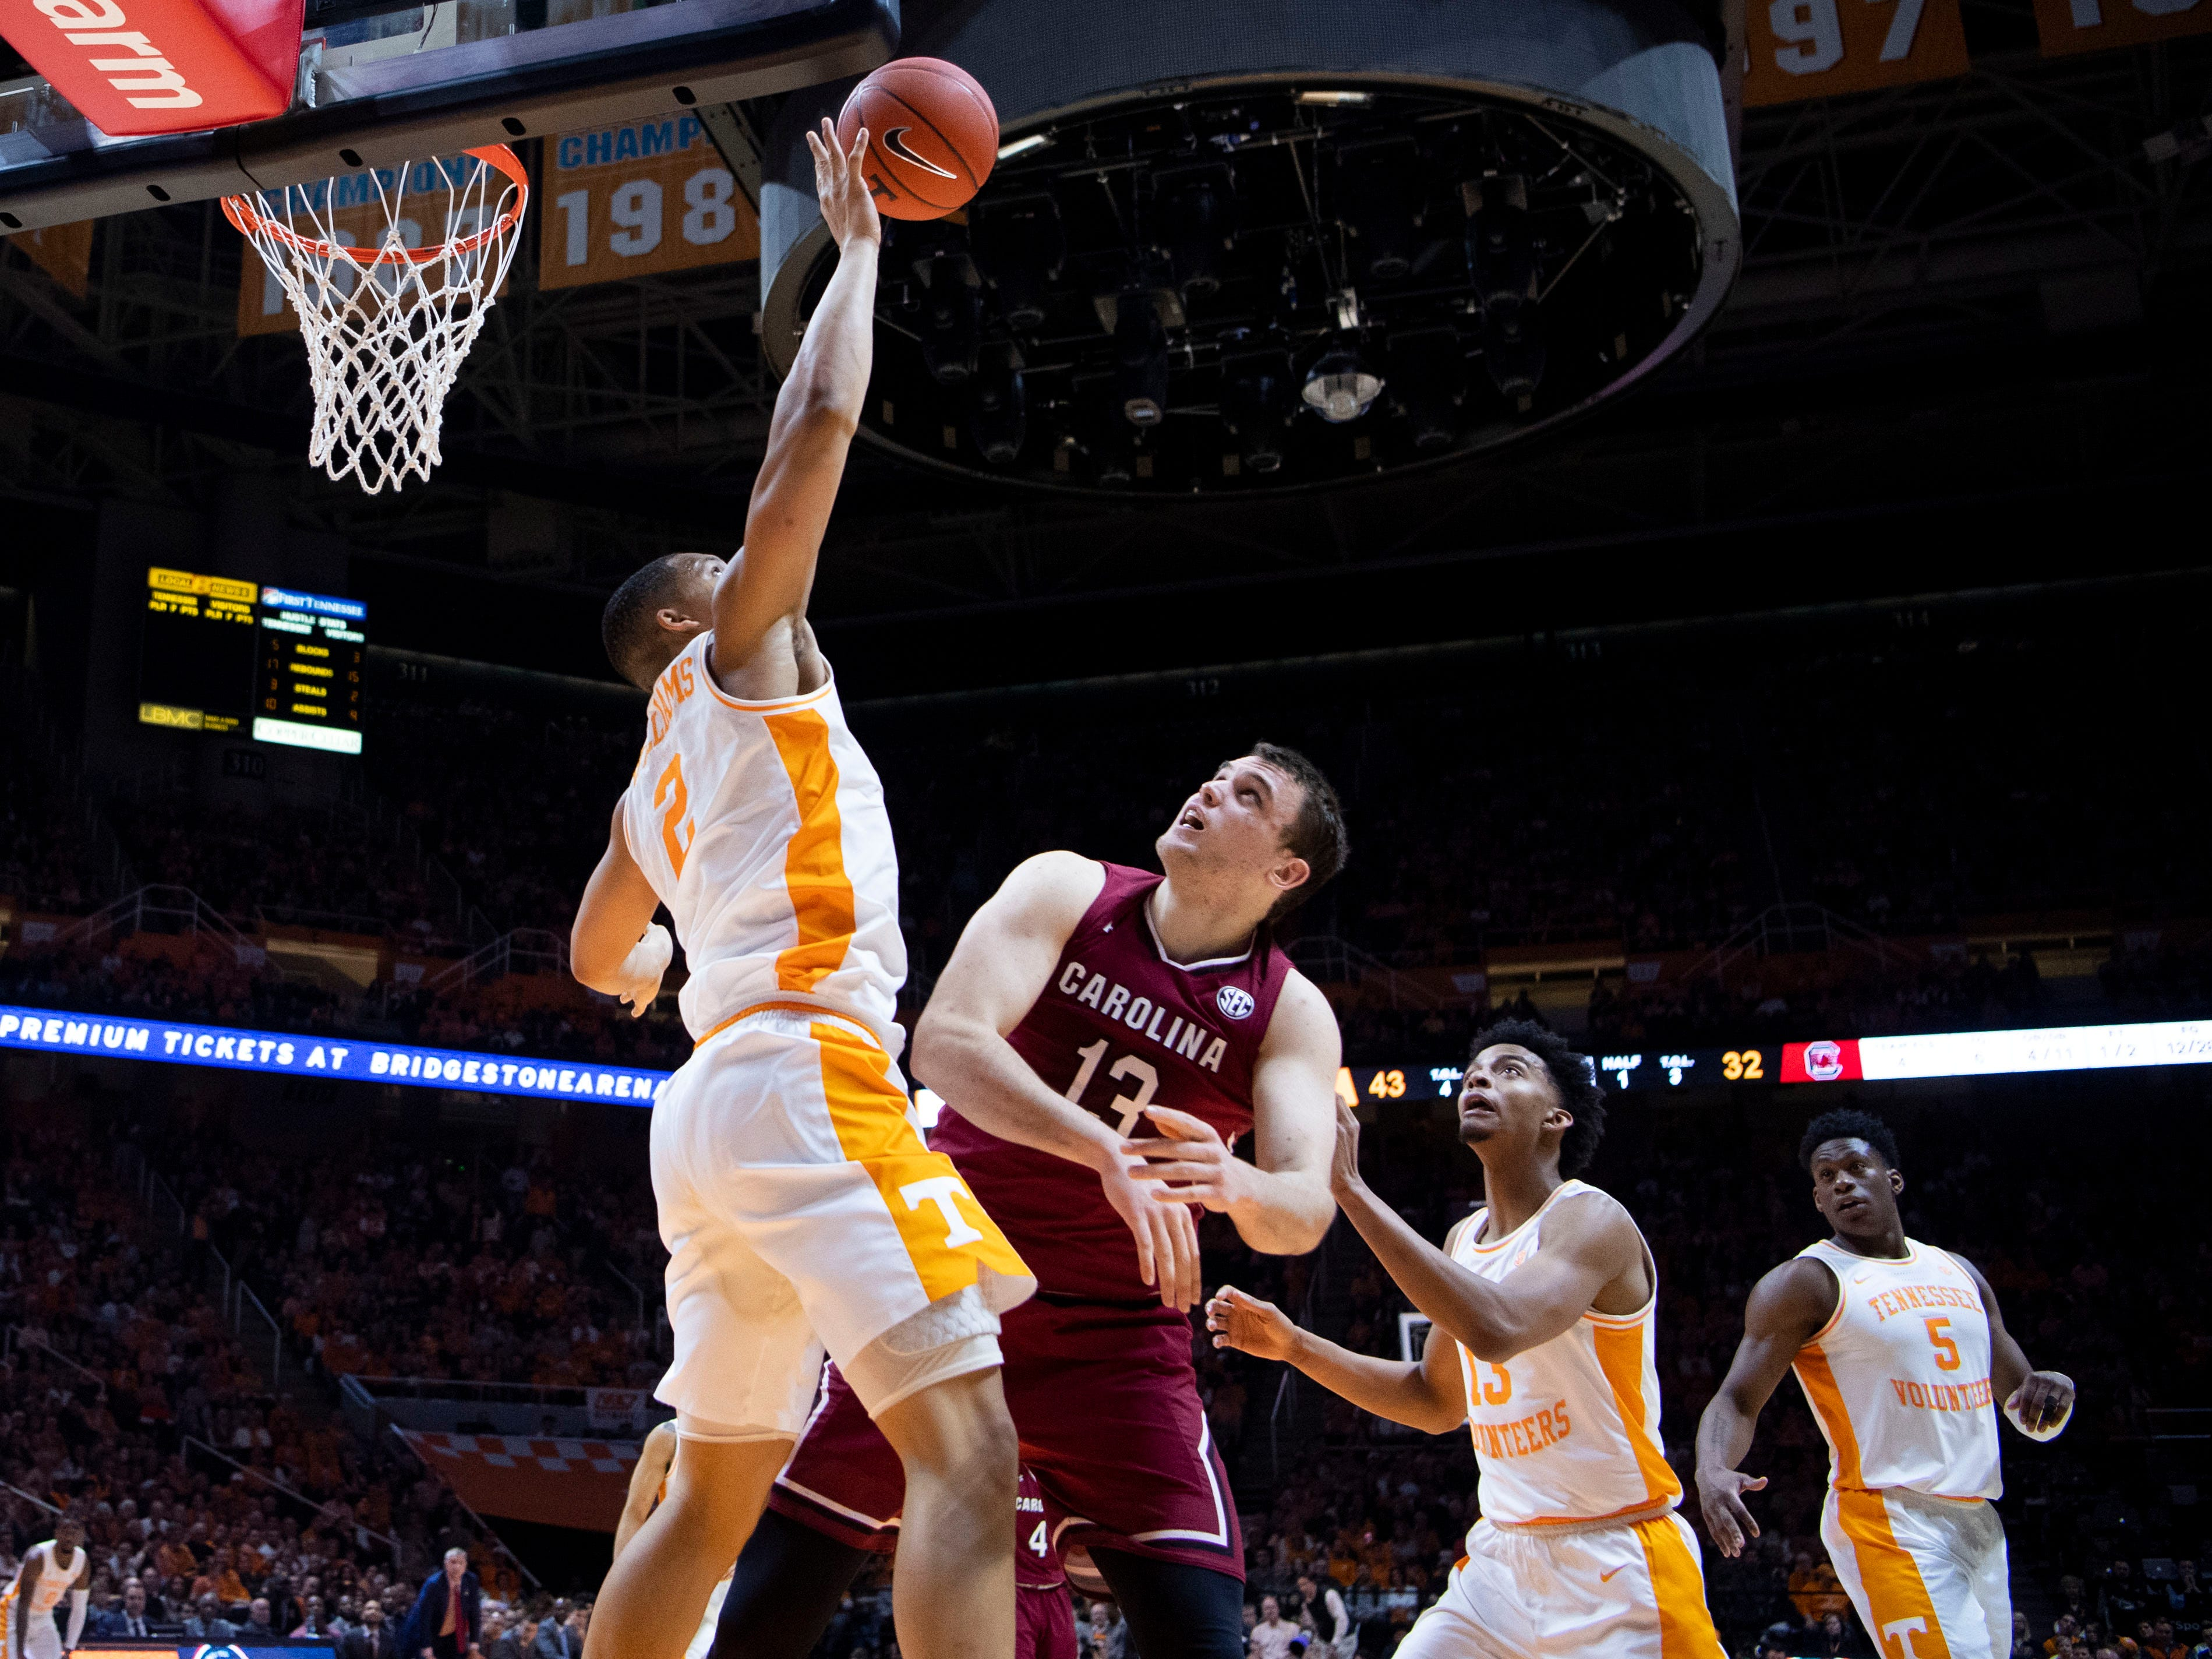 Tennessee's Grant Williams (2) blocks a shot attempt by South Carolina's Felipe Haase (13) on Wednesday, February 13, 2019.